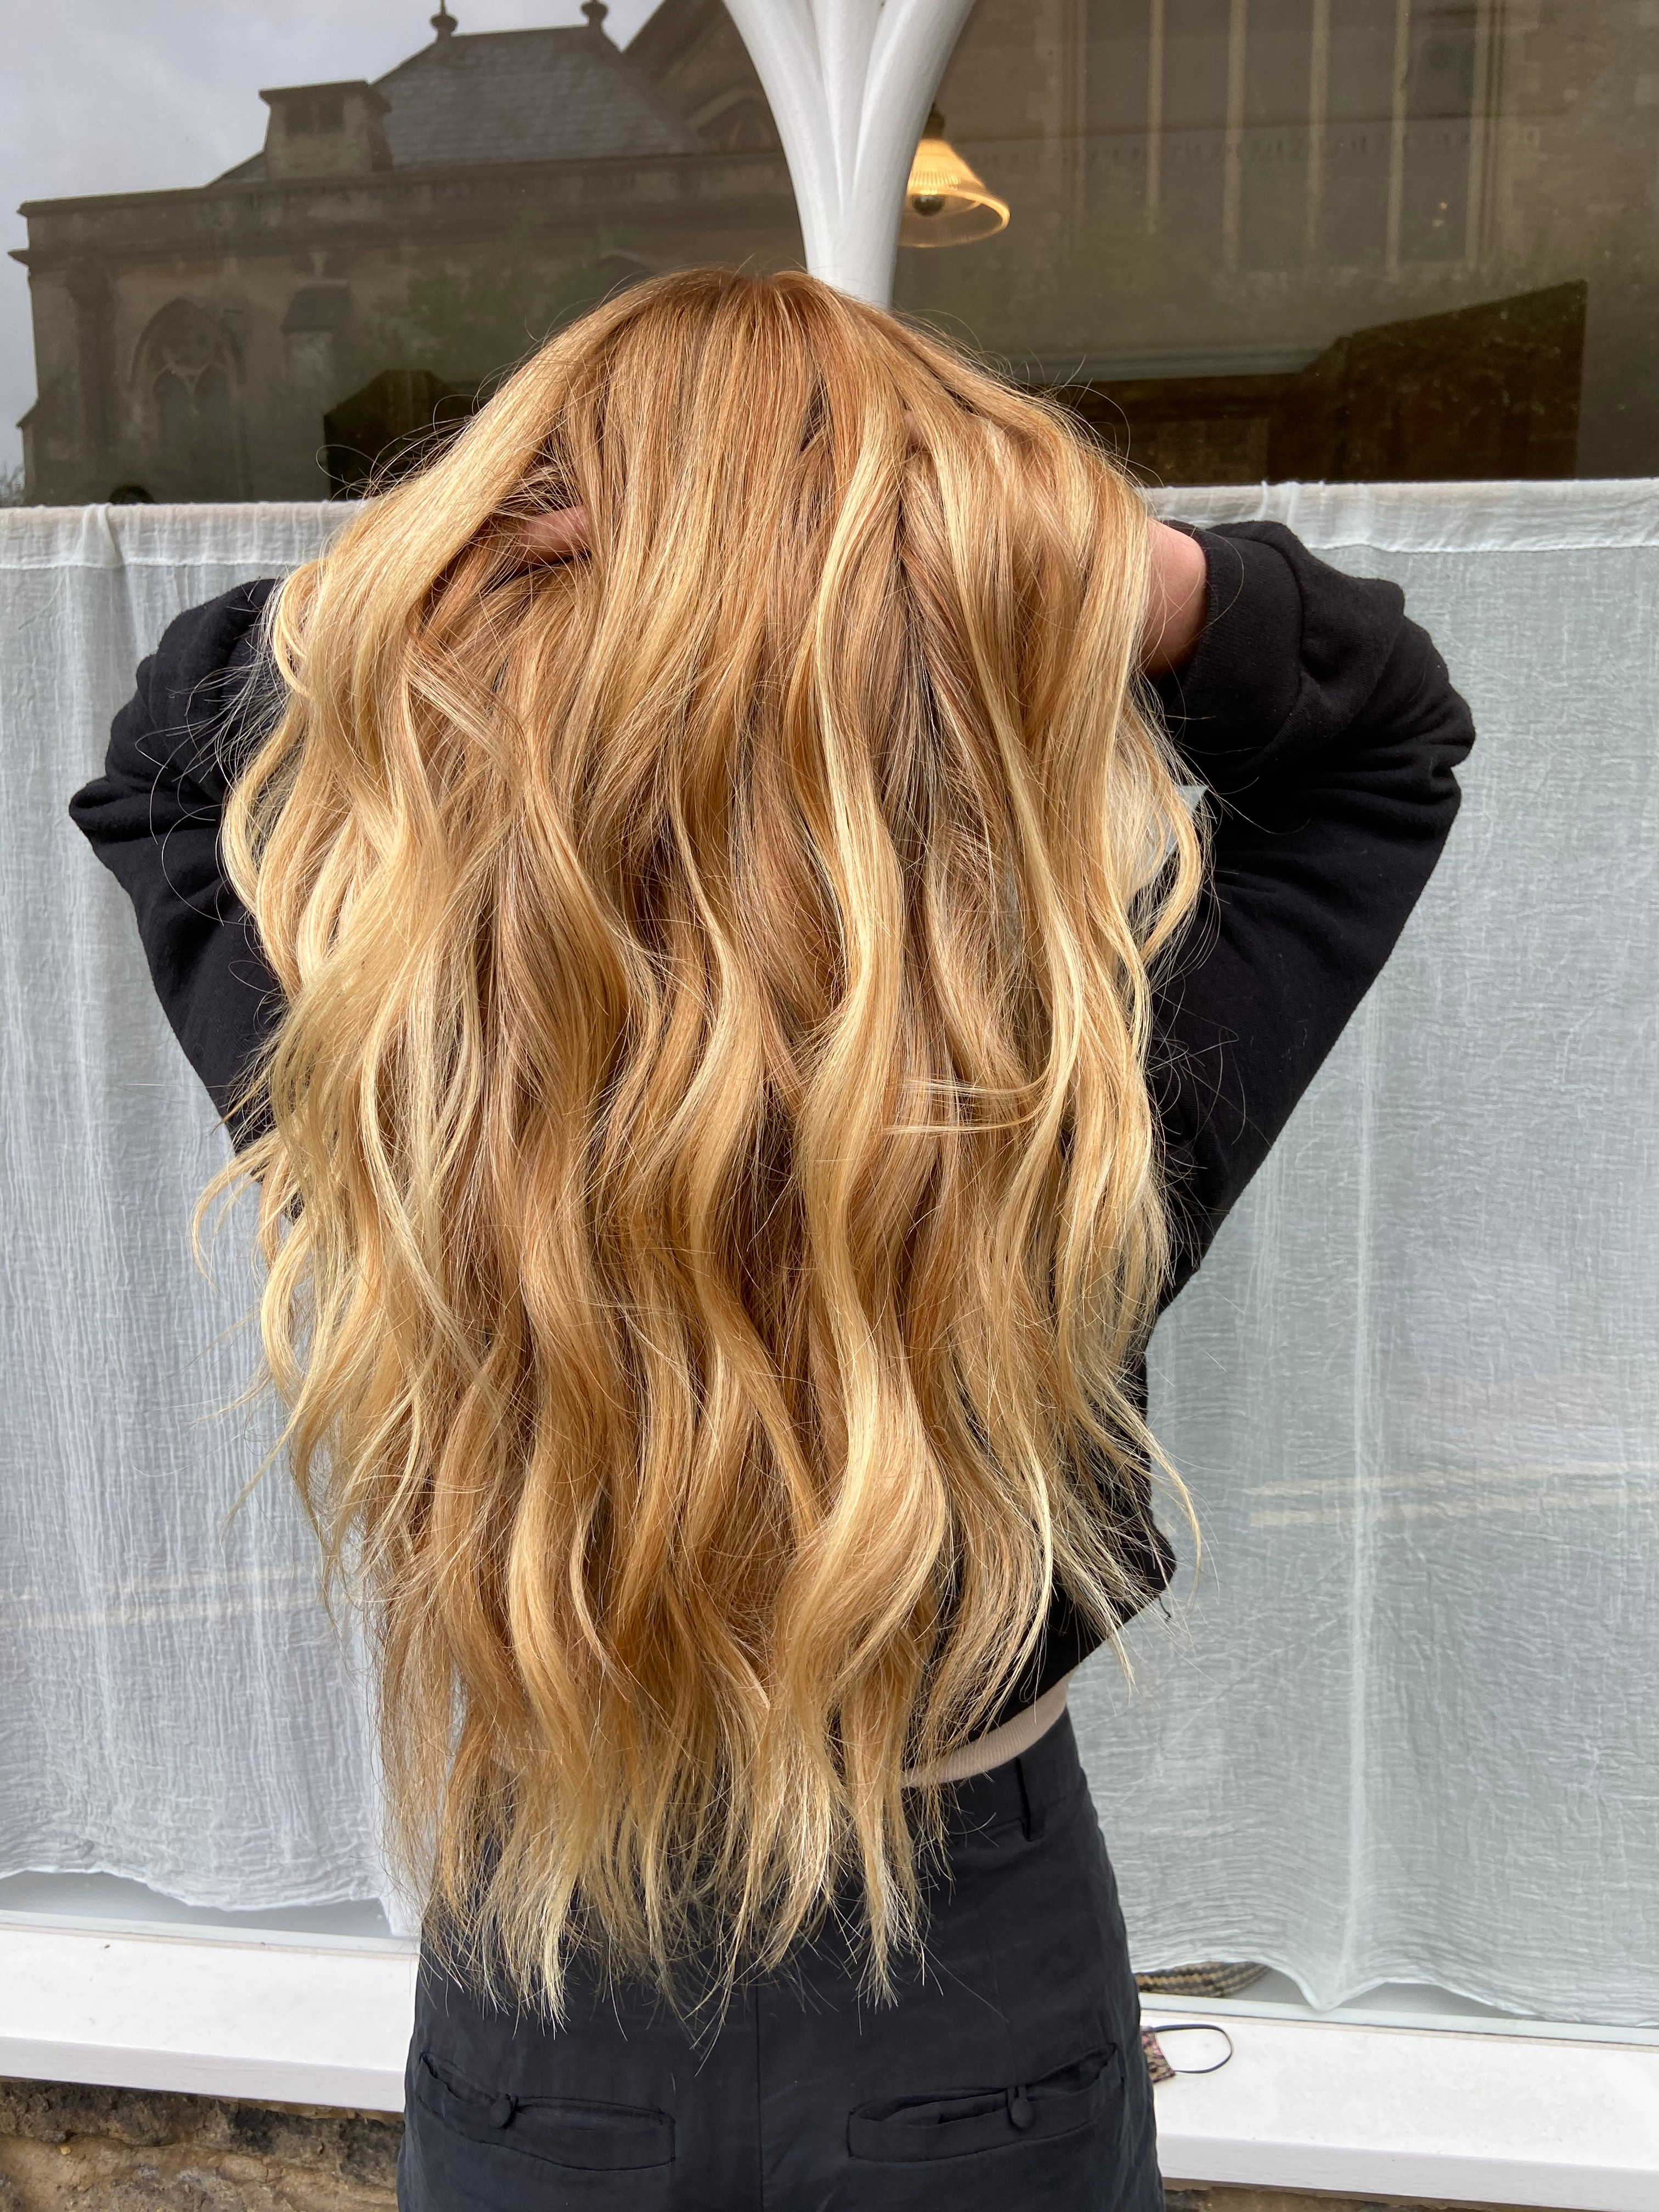 The California - with blowdry & styling